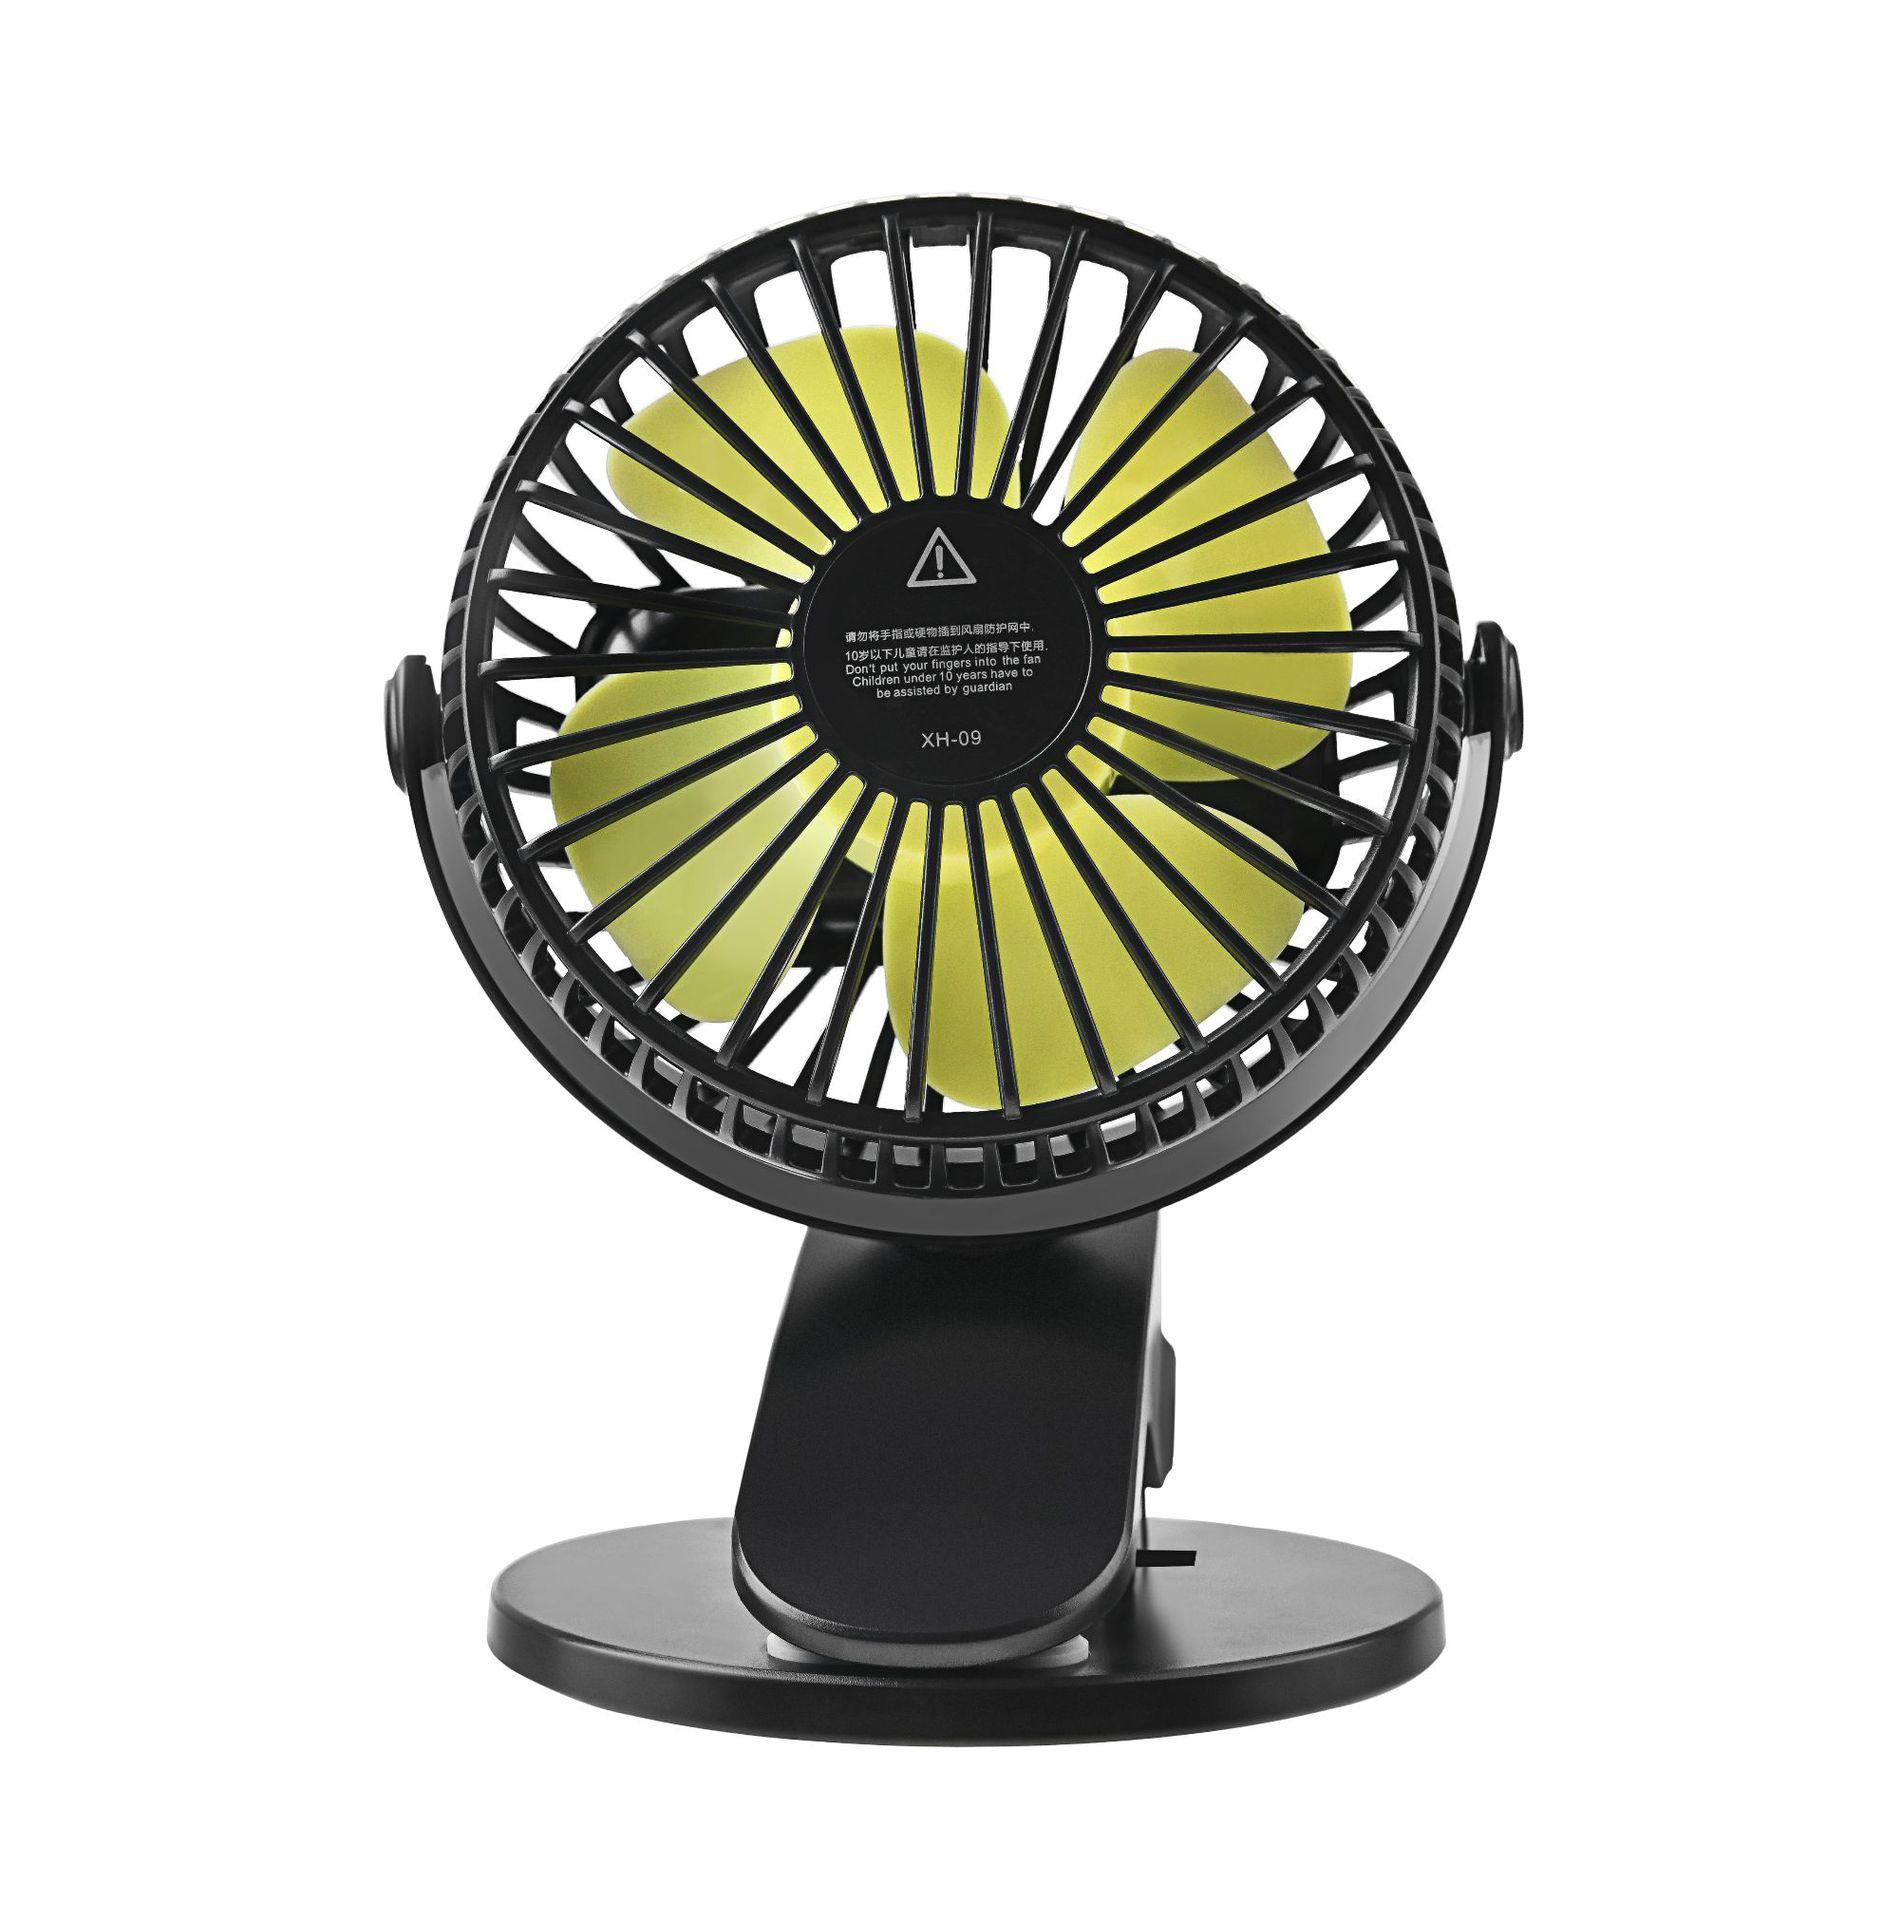 New Fashion Guitar Style Portable Fan Usb Mini Cooling Fan Air Conditioner With 1200ma Battery 3 Colors Available 3 Speed Adjust Small Air Conditioning Appliances